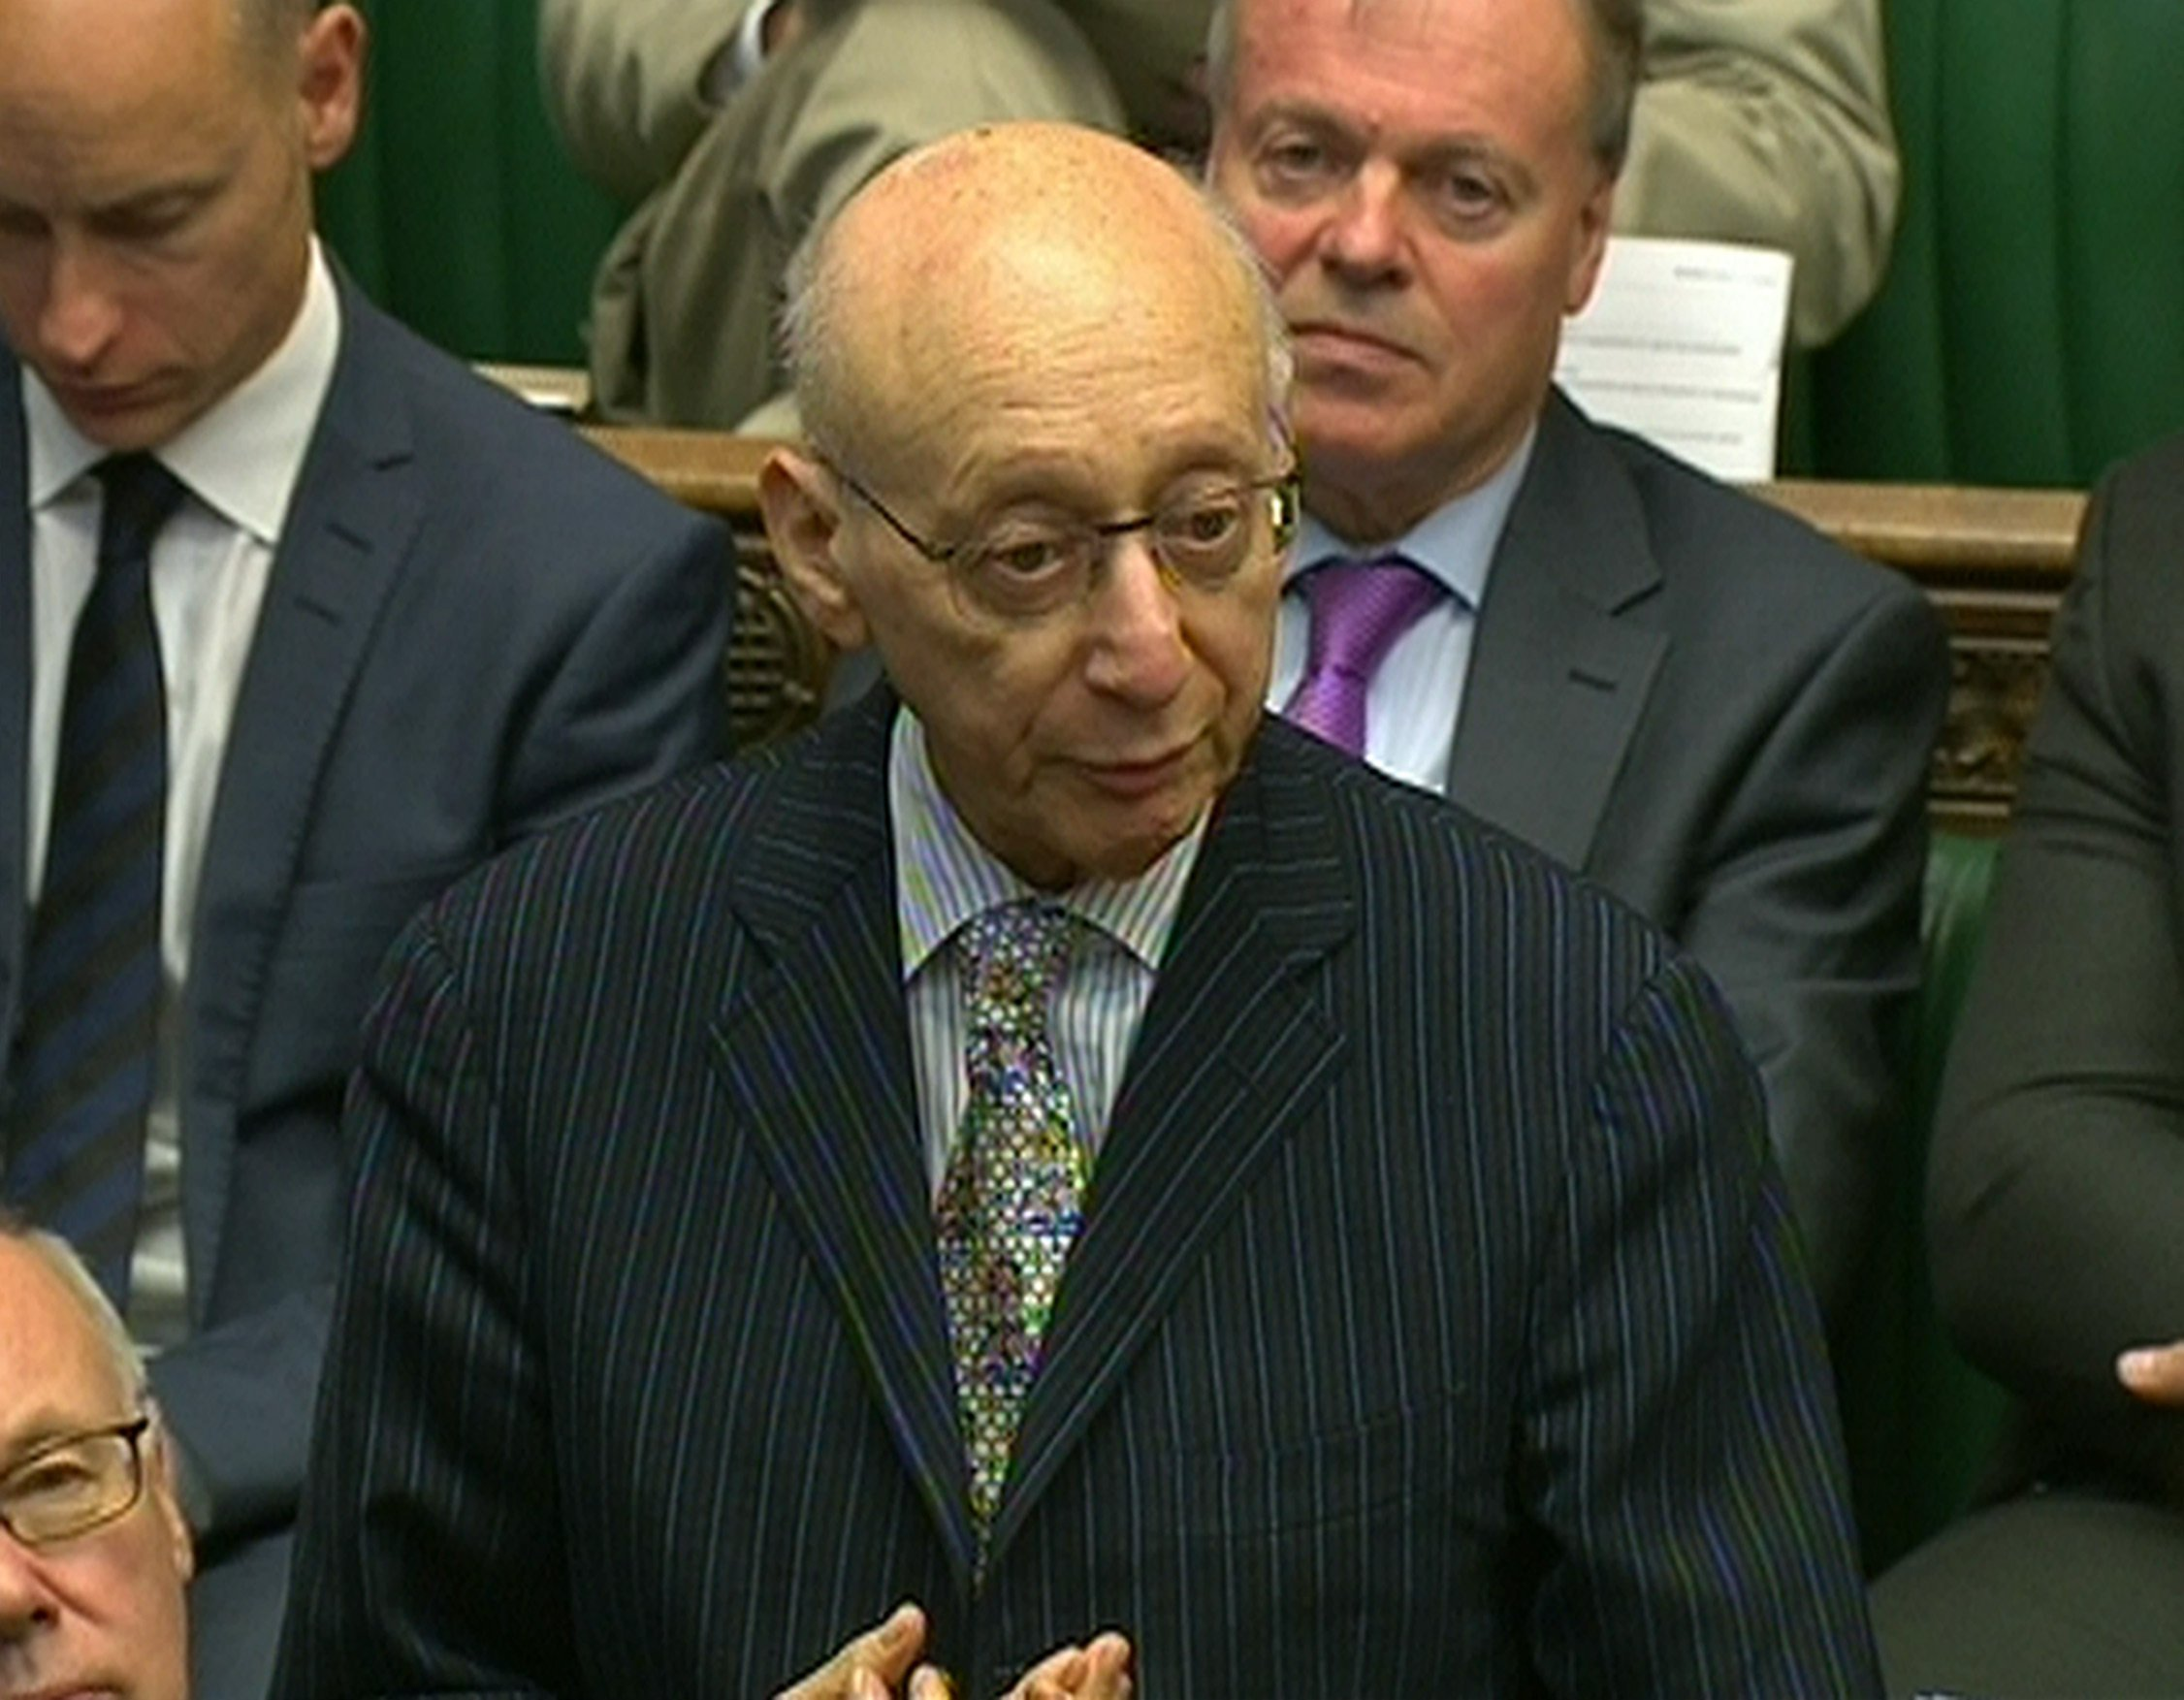 File photo dated 03/06/2015 of Gerald Kaufman in the House of Commons. The Labour MP for Manchester Gorton and Father of The House of Commons, has died aged 86, a family spokesman said. PRESS ASSOCIATION Photo. Issue date: Sunday February 26, 2017. See PA story DEATH Kaufman. Photo credit should read: PA Wire